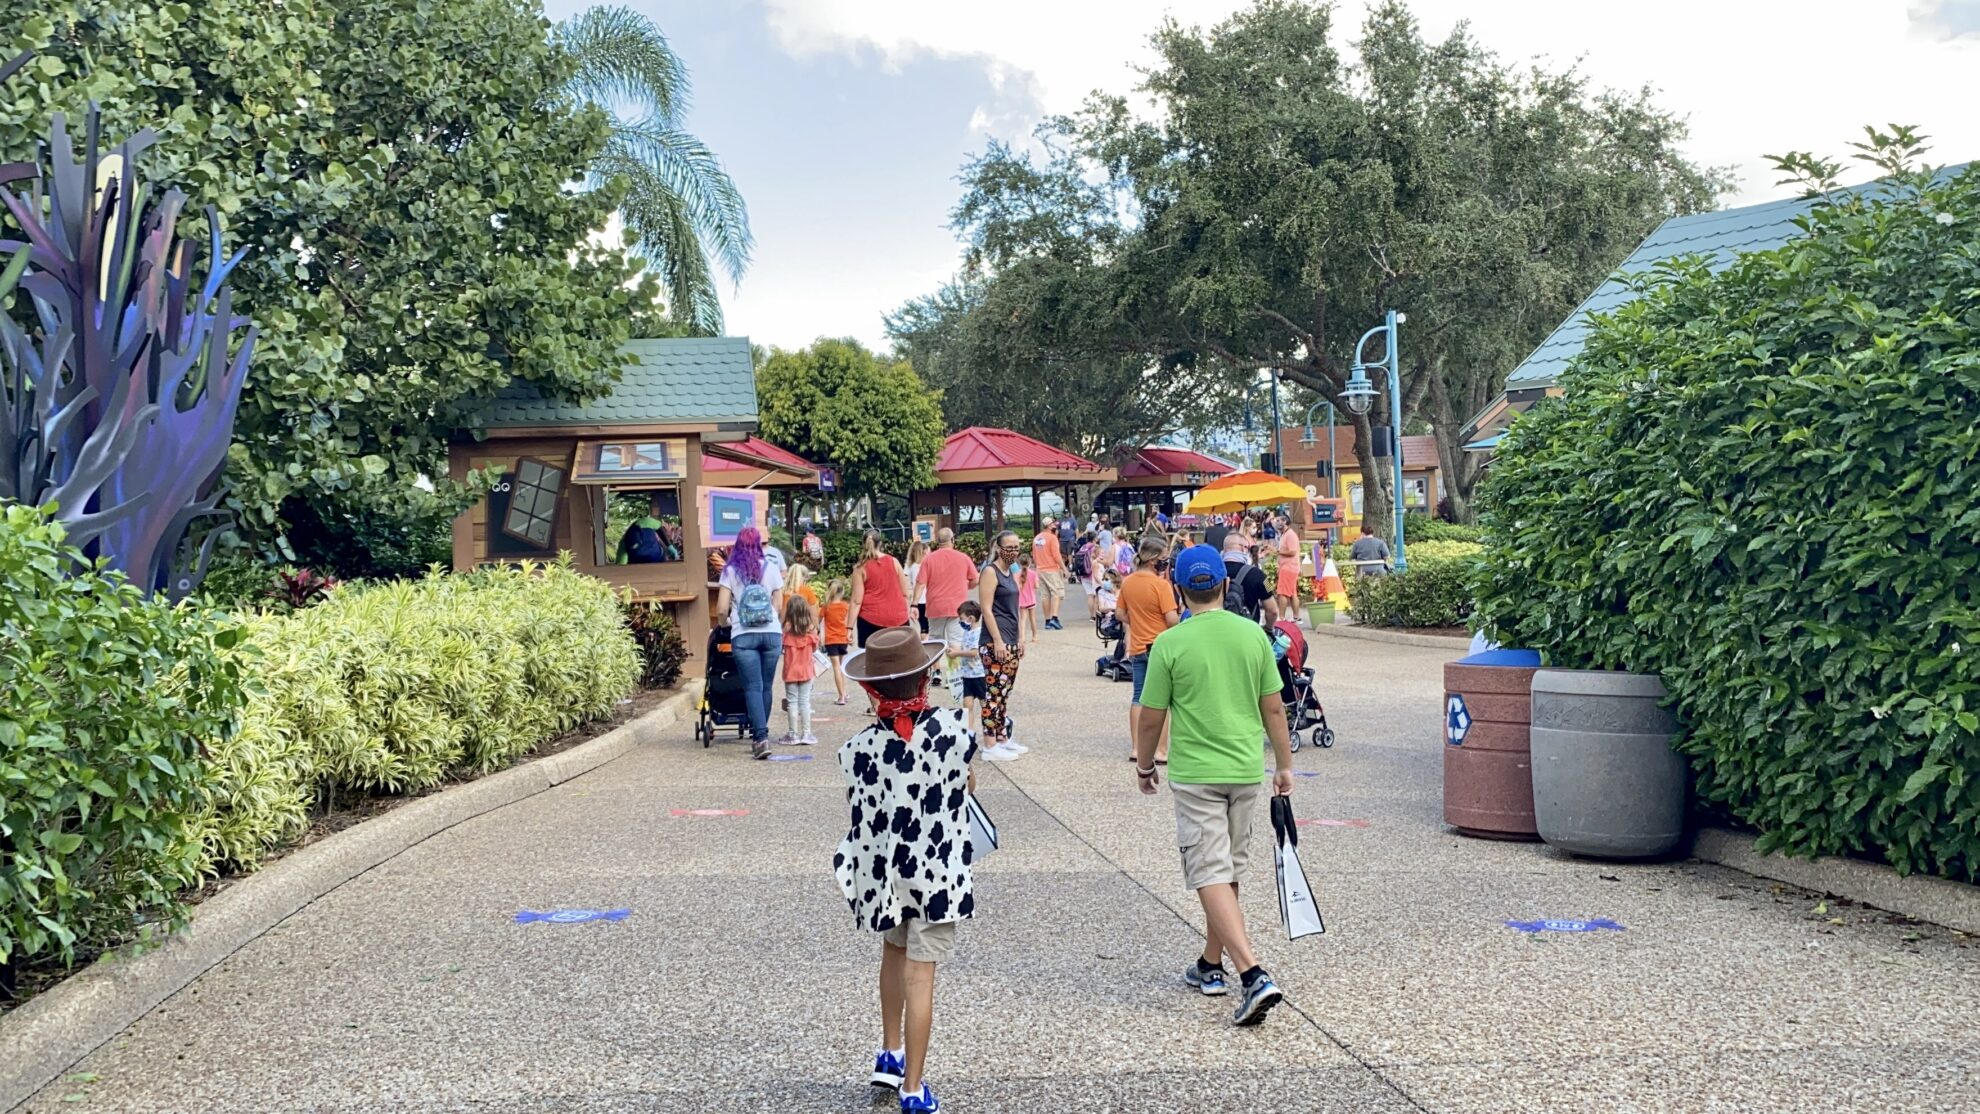 Children walking at a distance at SeaWorld Orlando Spooktacular trick or treating.